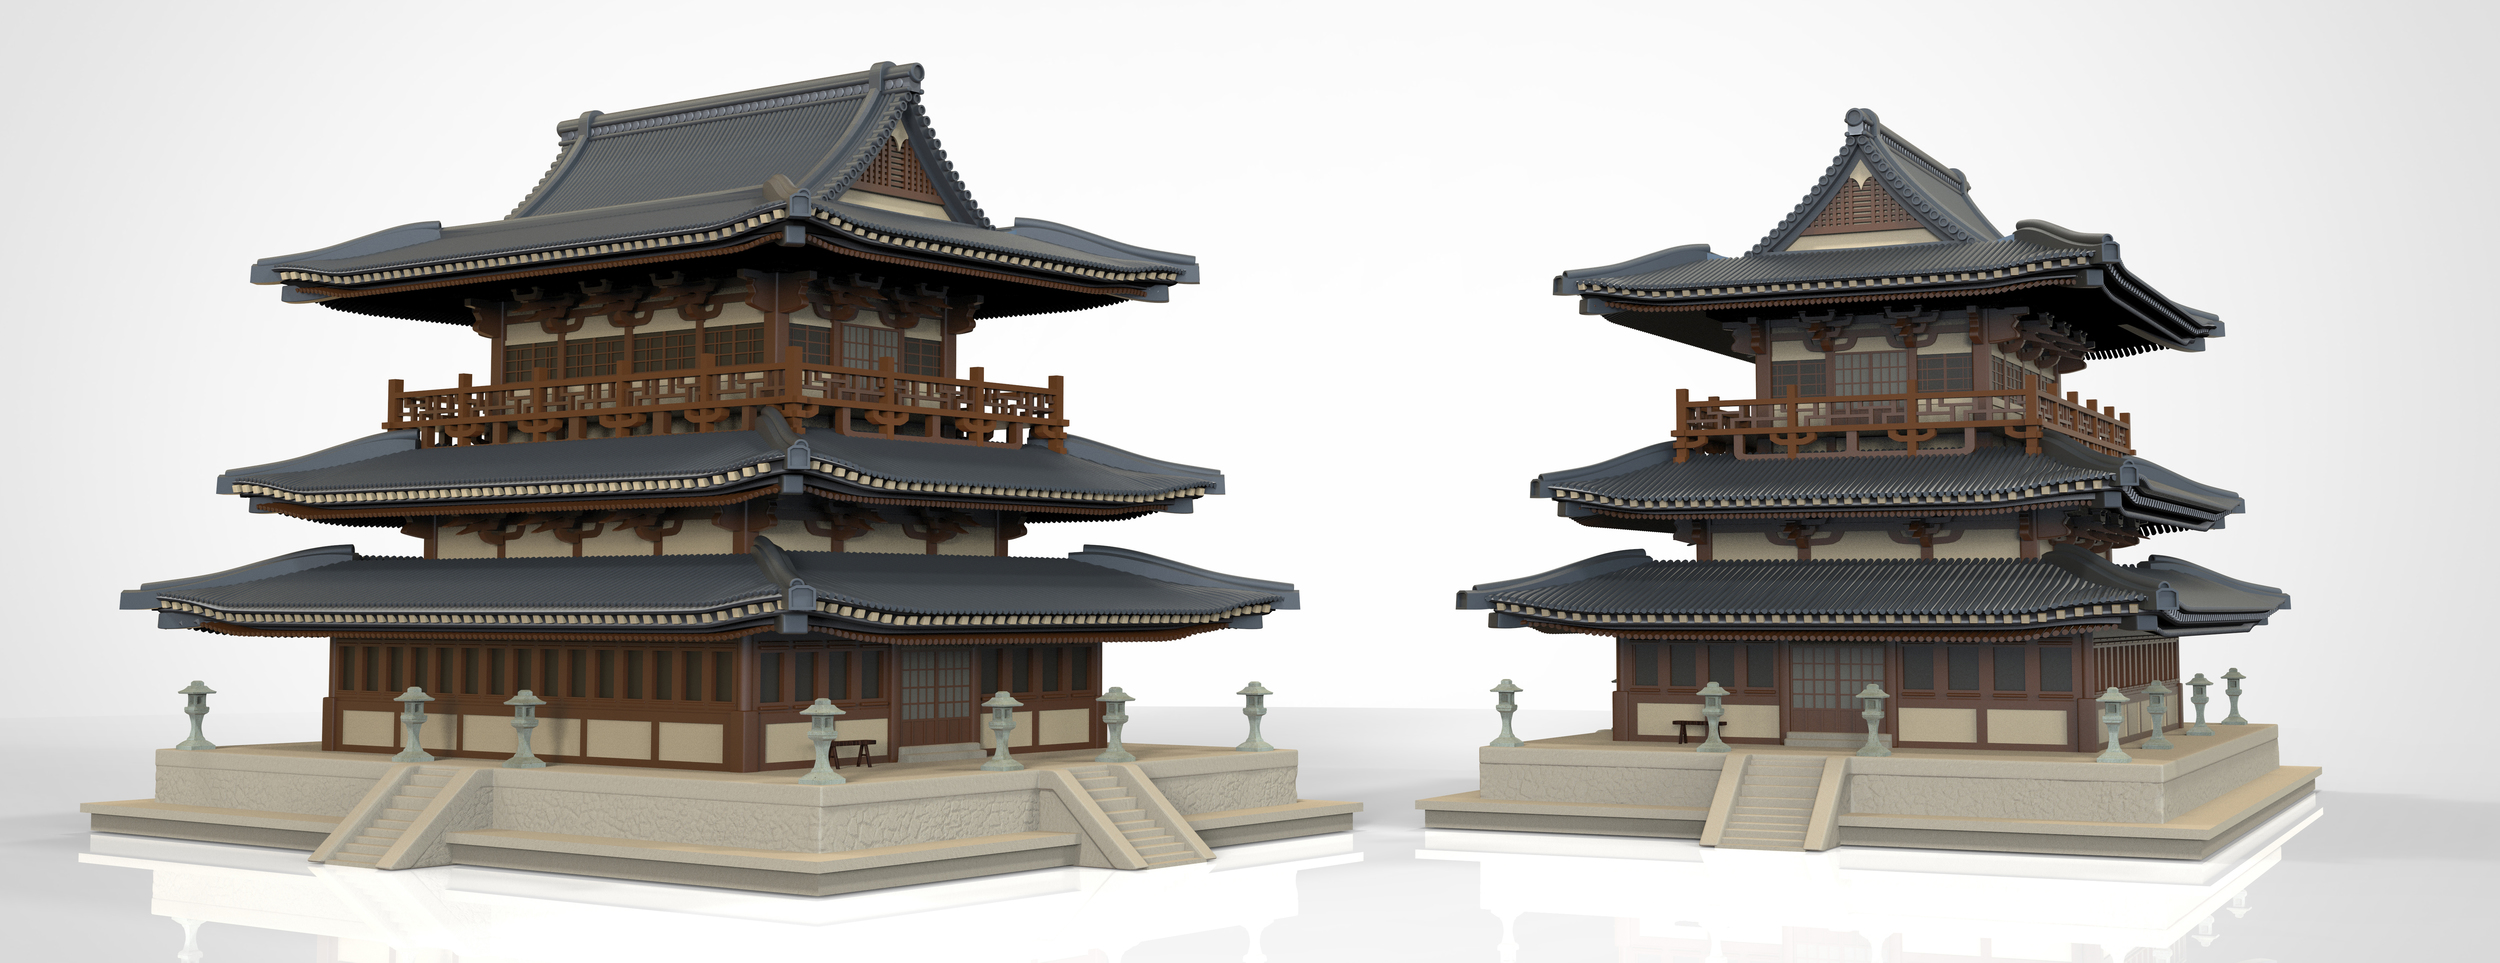 James_Chao_Japanese_Temple